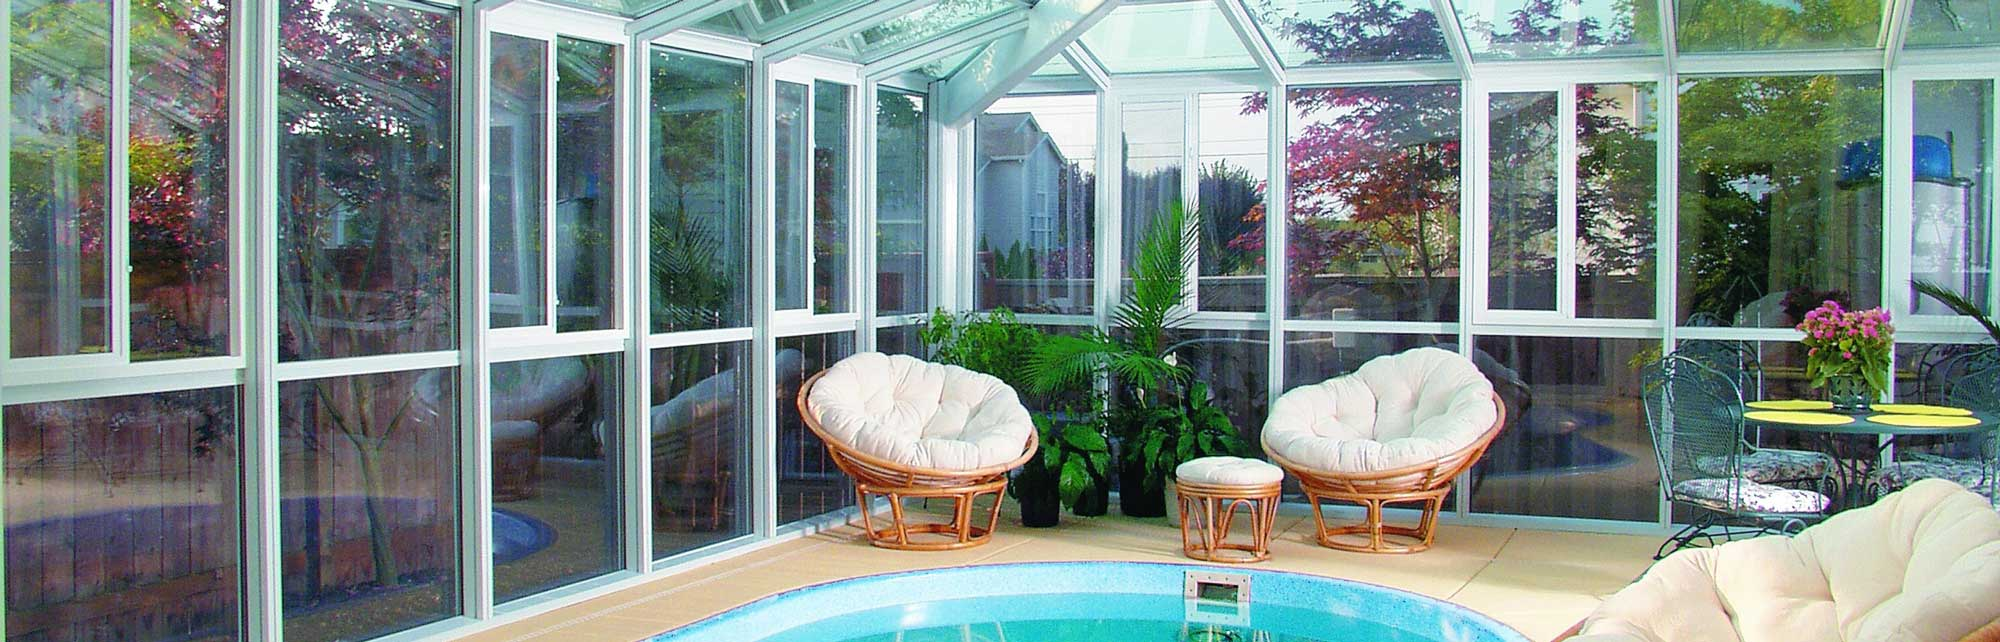 Pool enclosure with surrounding pool furniture